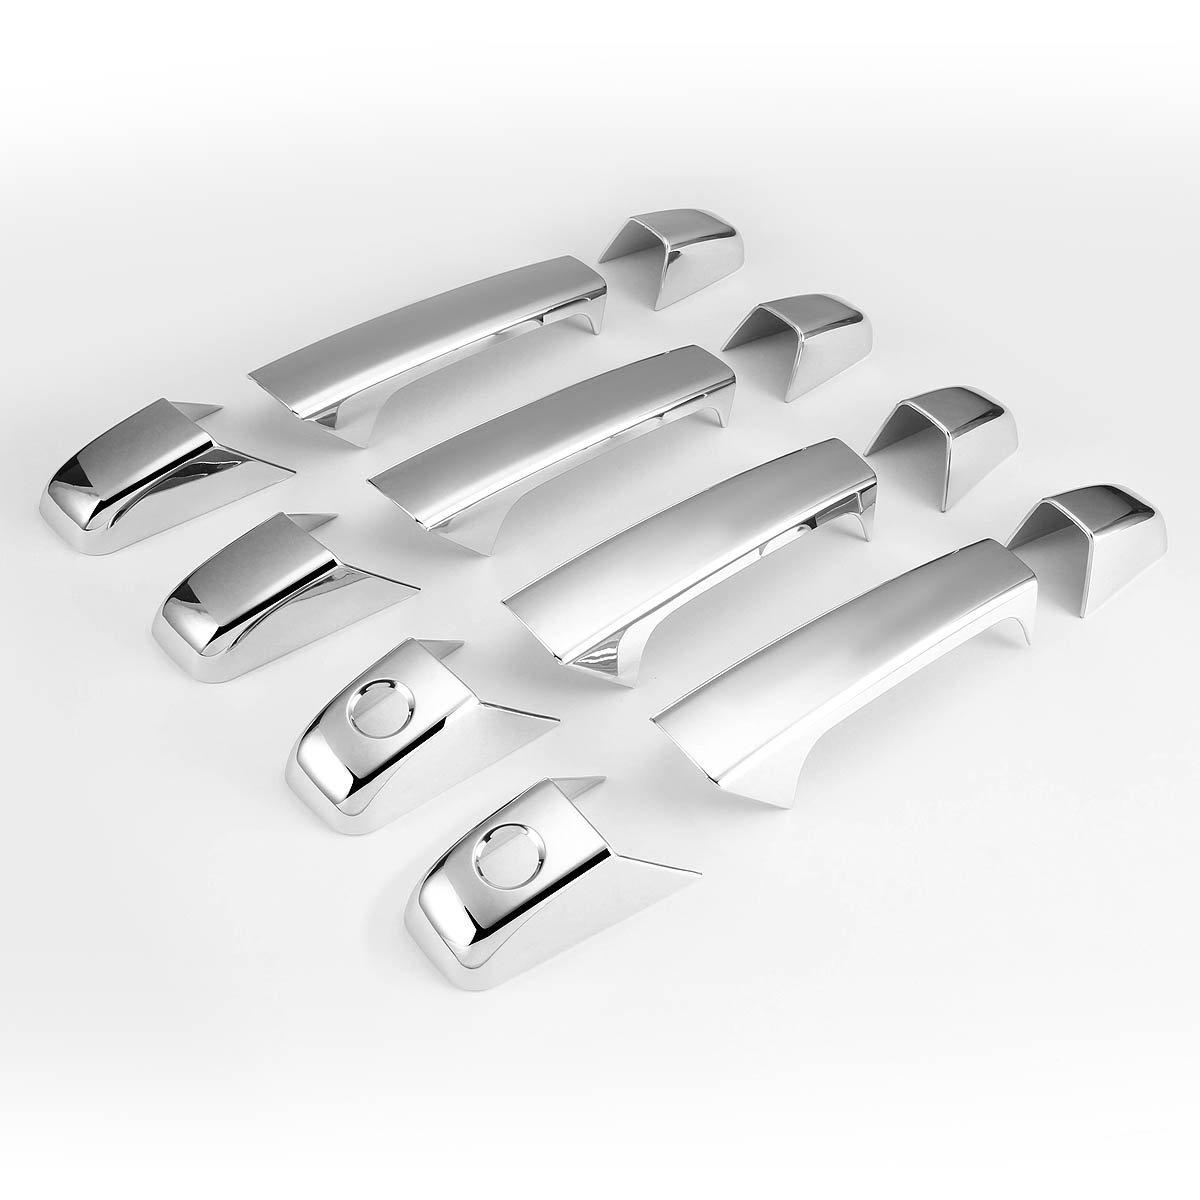 Chrome For Chevy Avalance//Silverado//Suburban//Tahoe 4pcs Exterior Door Handle Cover without Passenger Keyhole